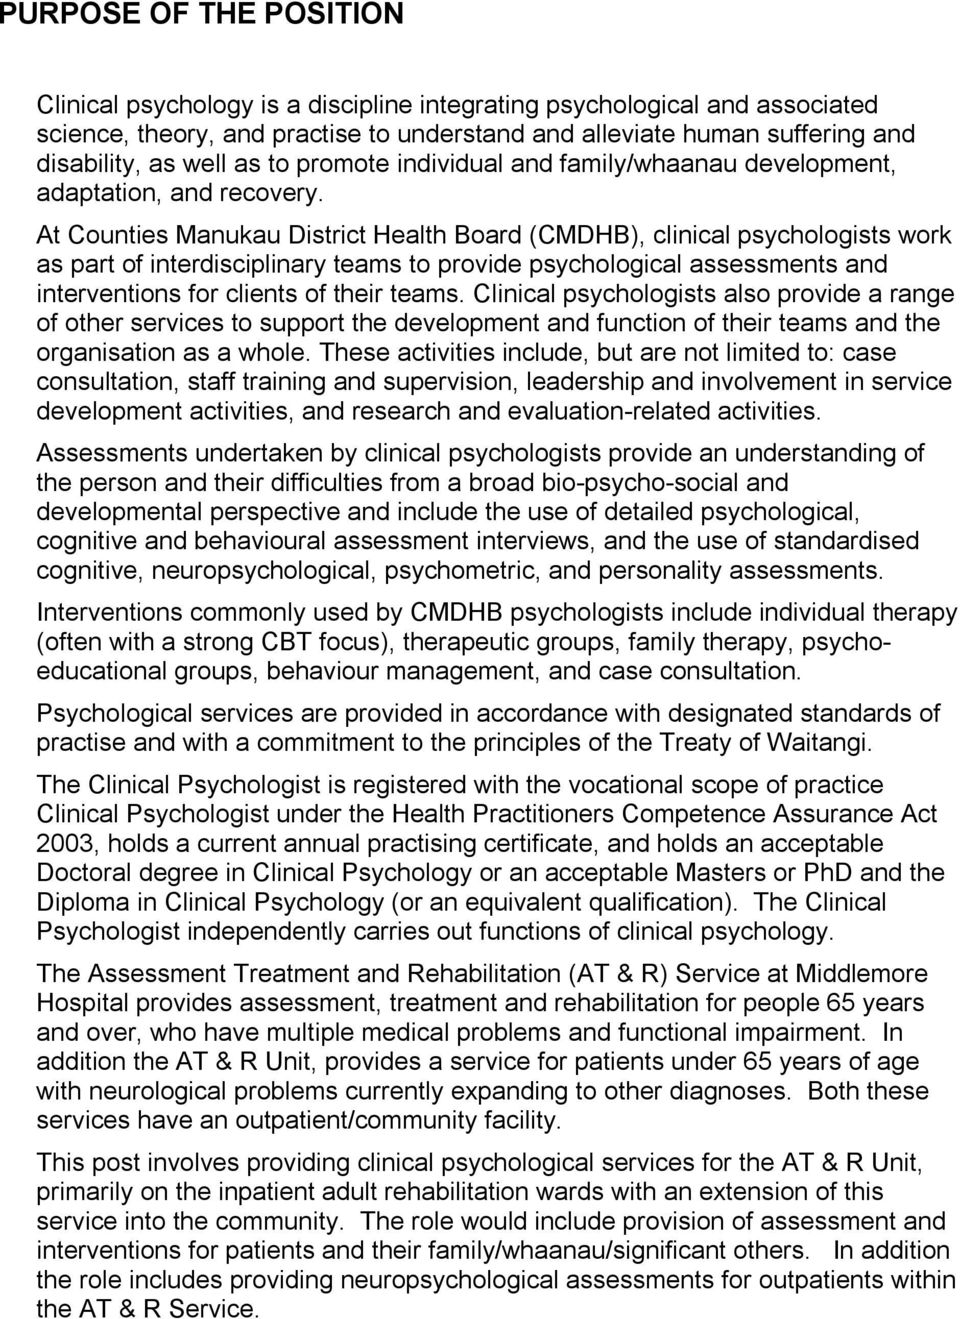 At Counties Manukau District Health Board (CMDHB), clinical psychologists work as part of interdisciplinary teams to provide psychological assessments and interventions for clients of their teams.